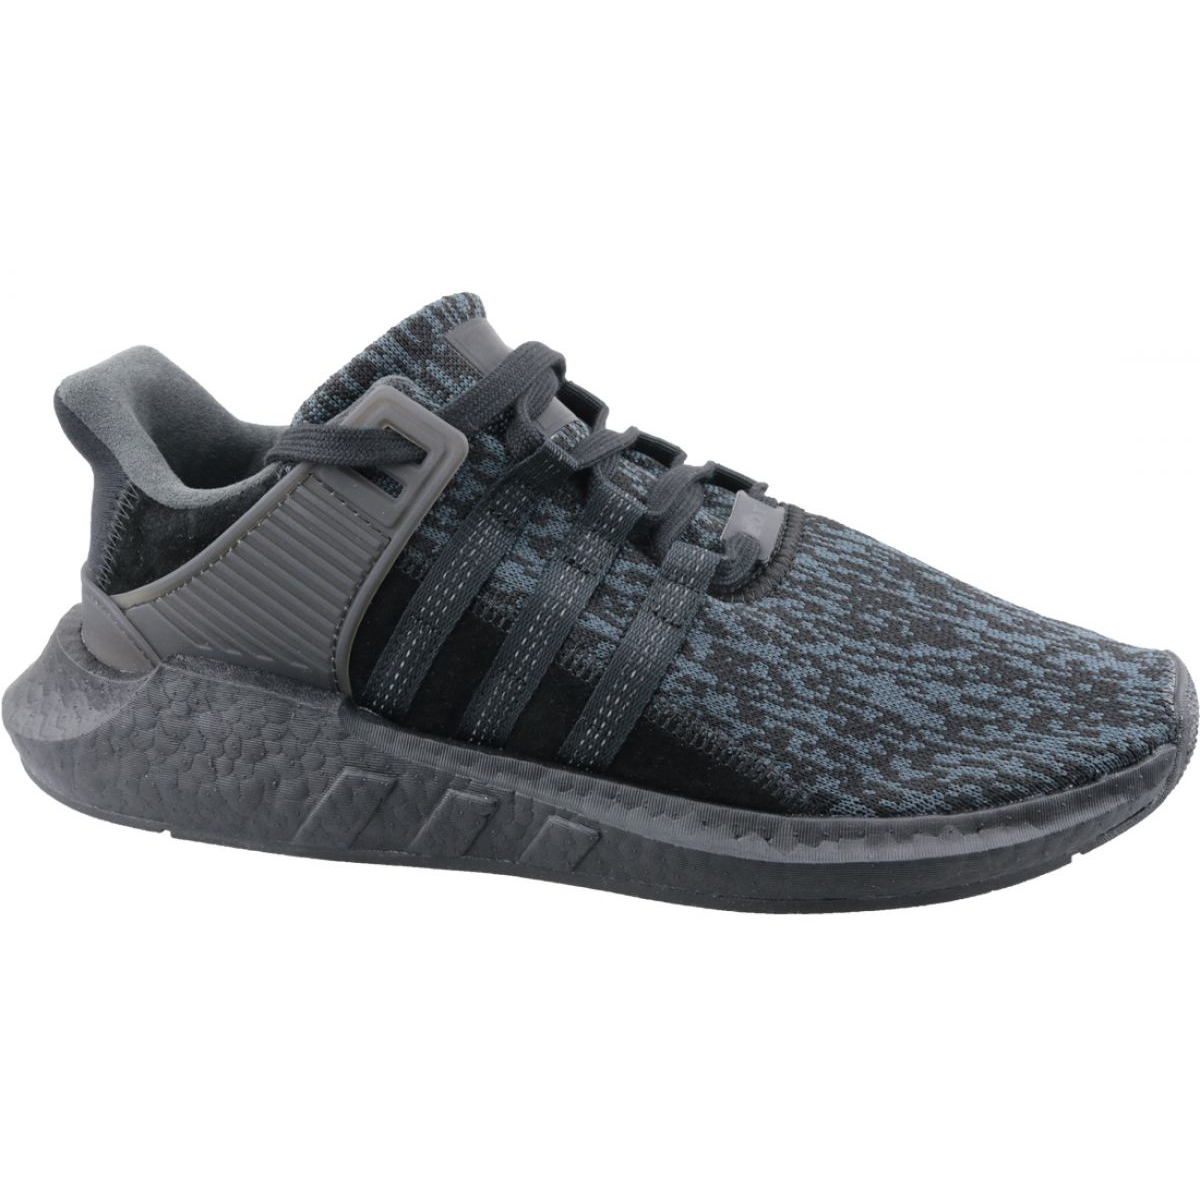 the latest 327f7 441af Black Adidas Eqt Support 93/17 M BY9512 shoes